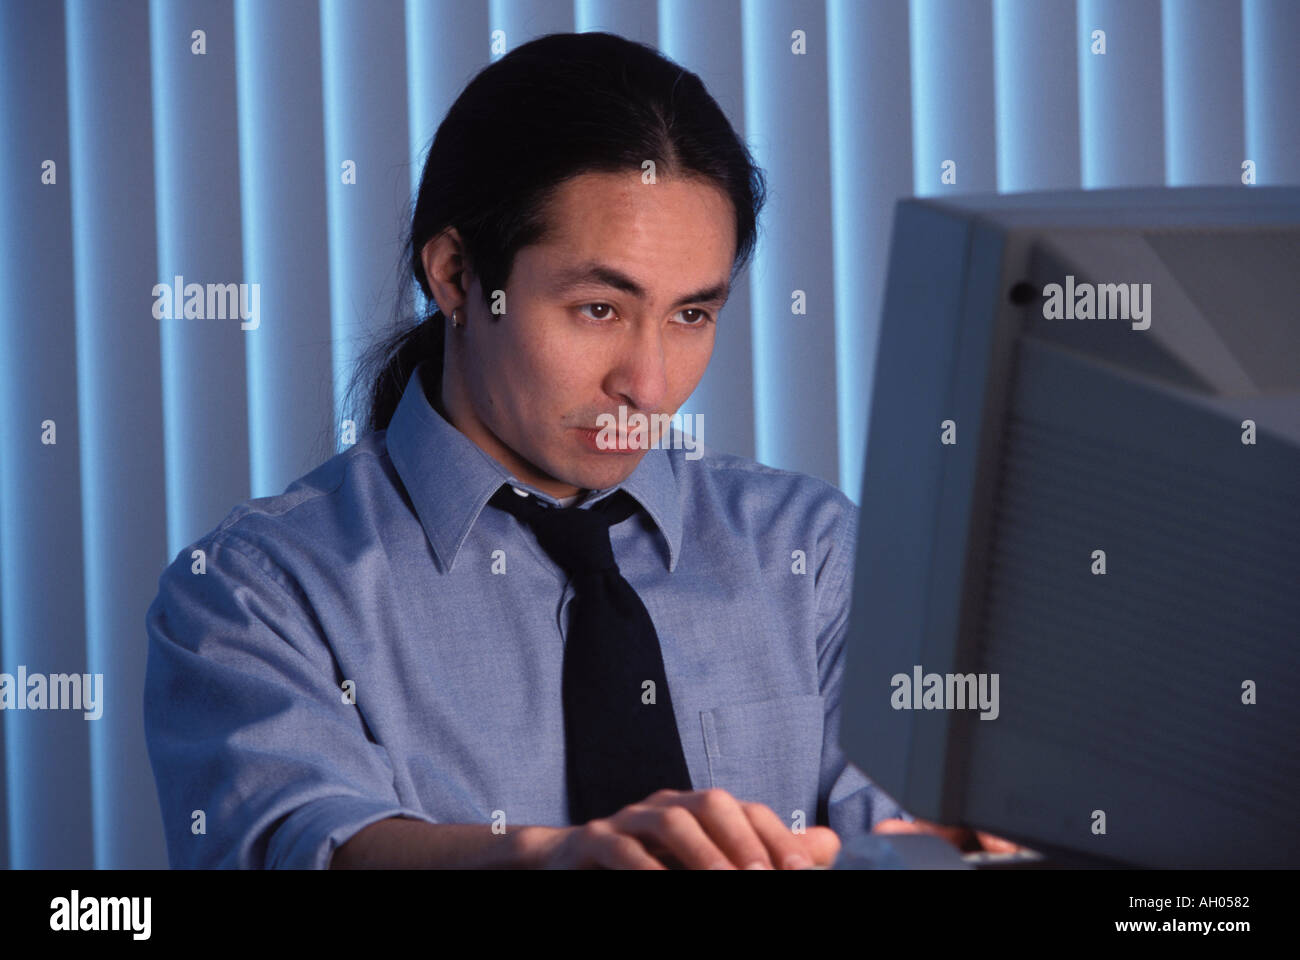 Man Working Late At Office - Stock Image